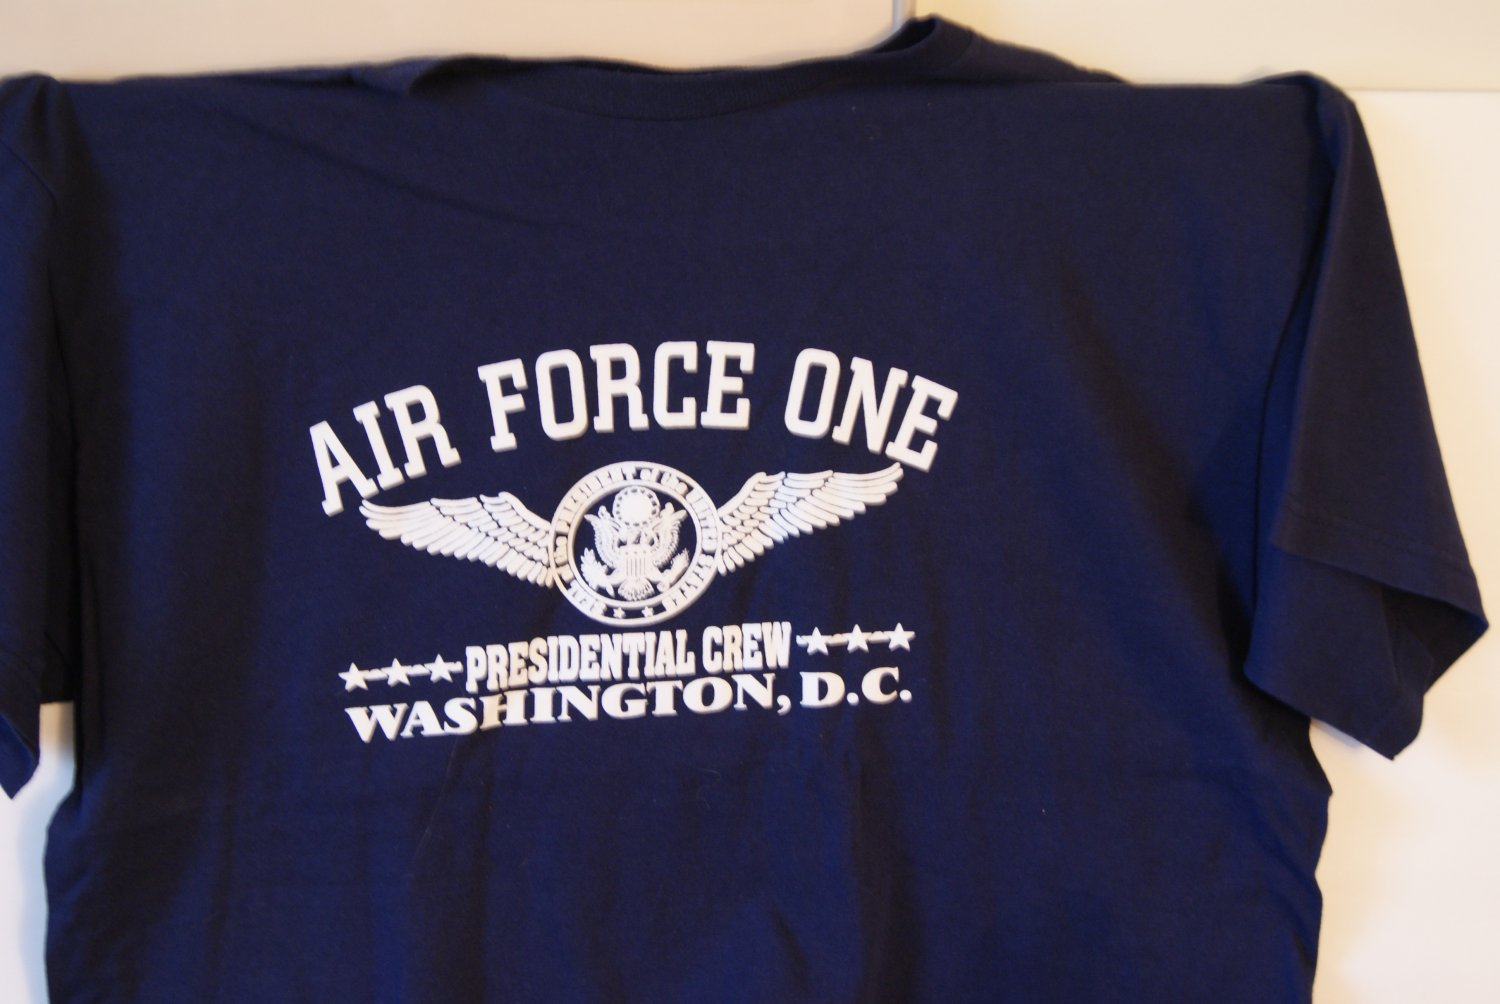 Air Force One tee